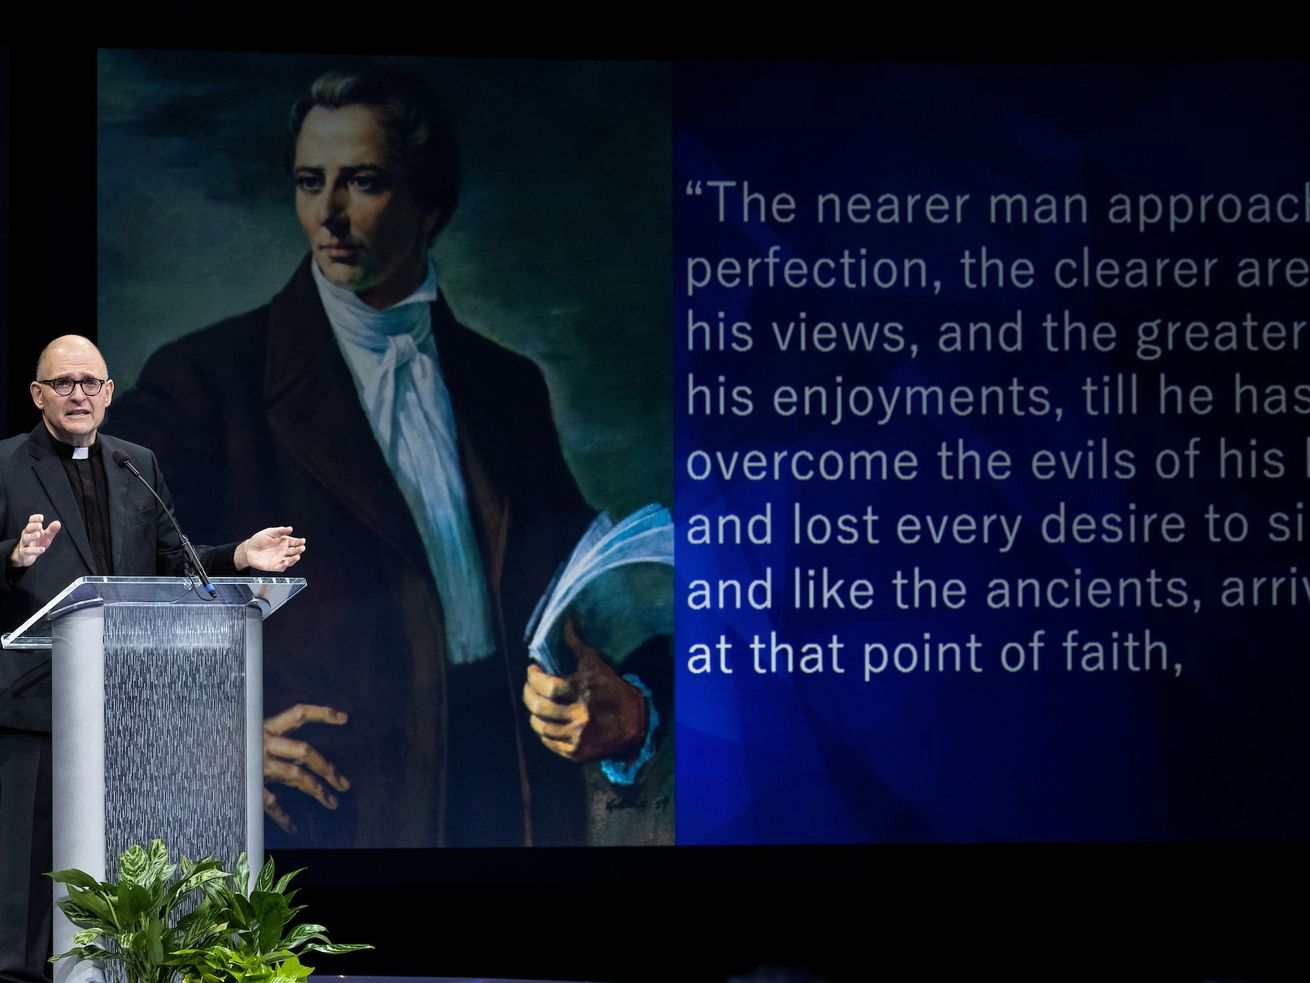 The Rev. Dr. Andrew Teal tells BYU students he will journey with them